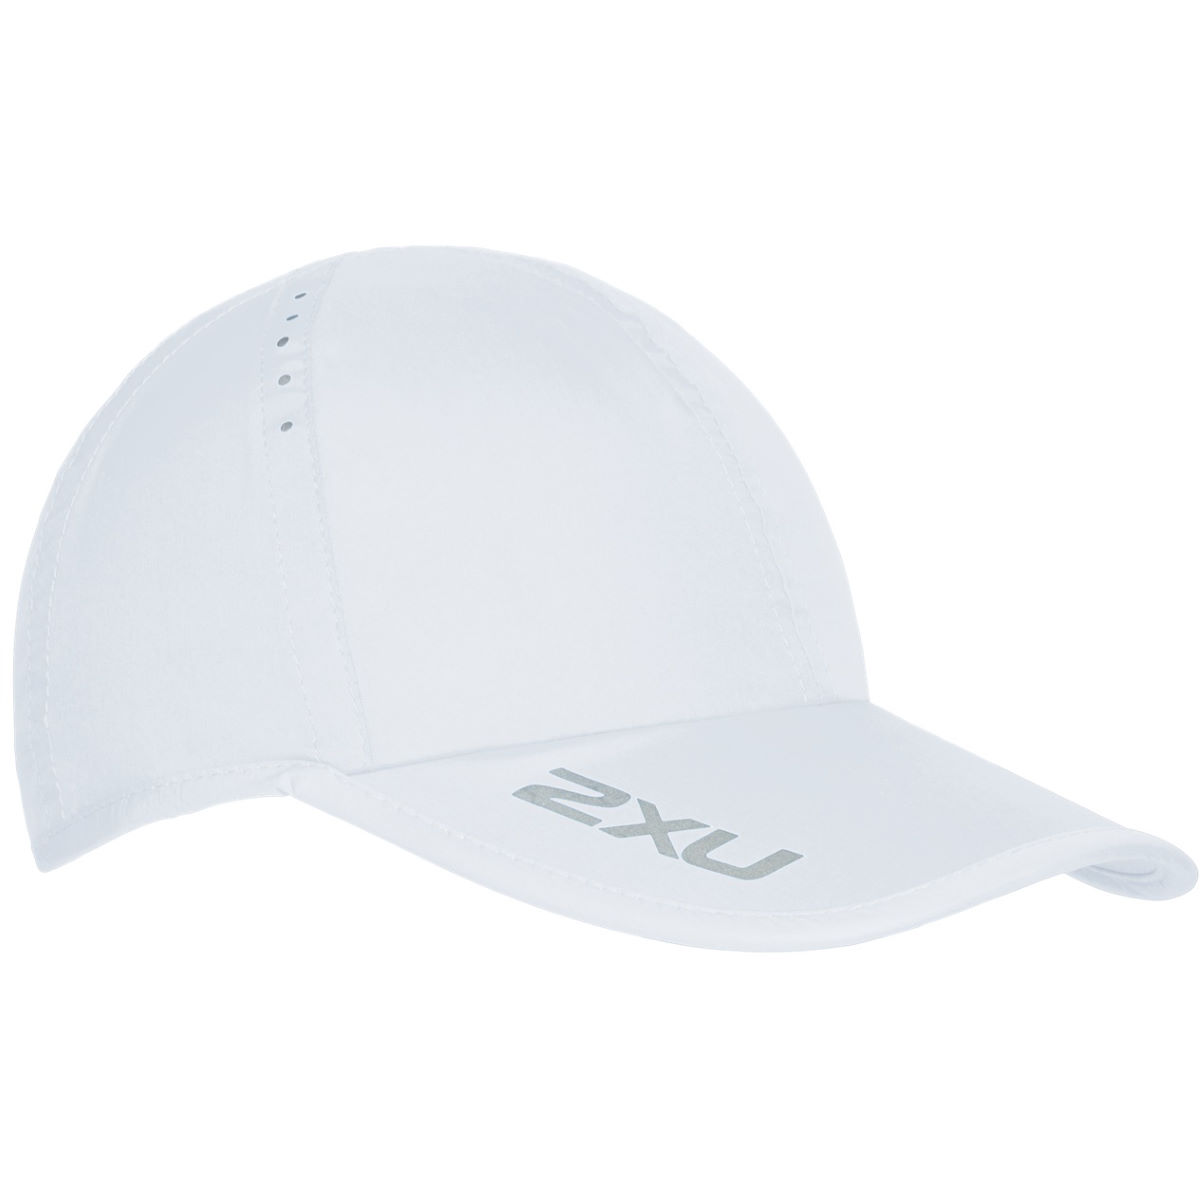 2XU Run Cap - Gorras